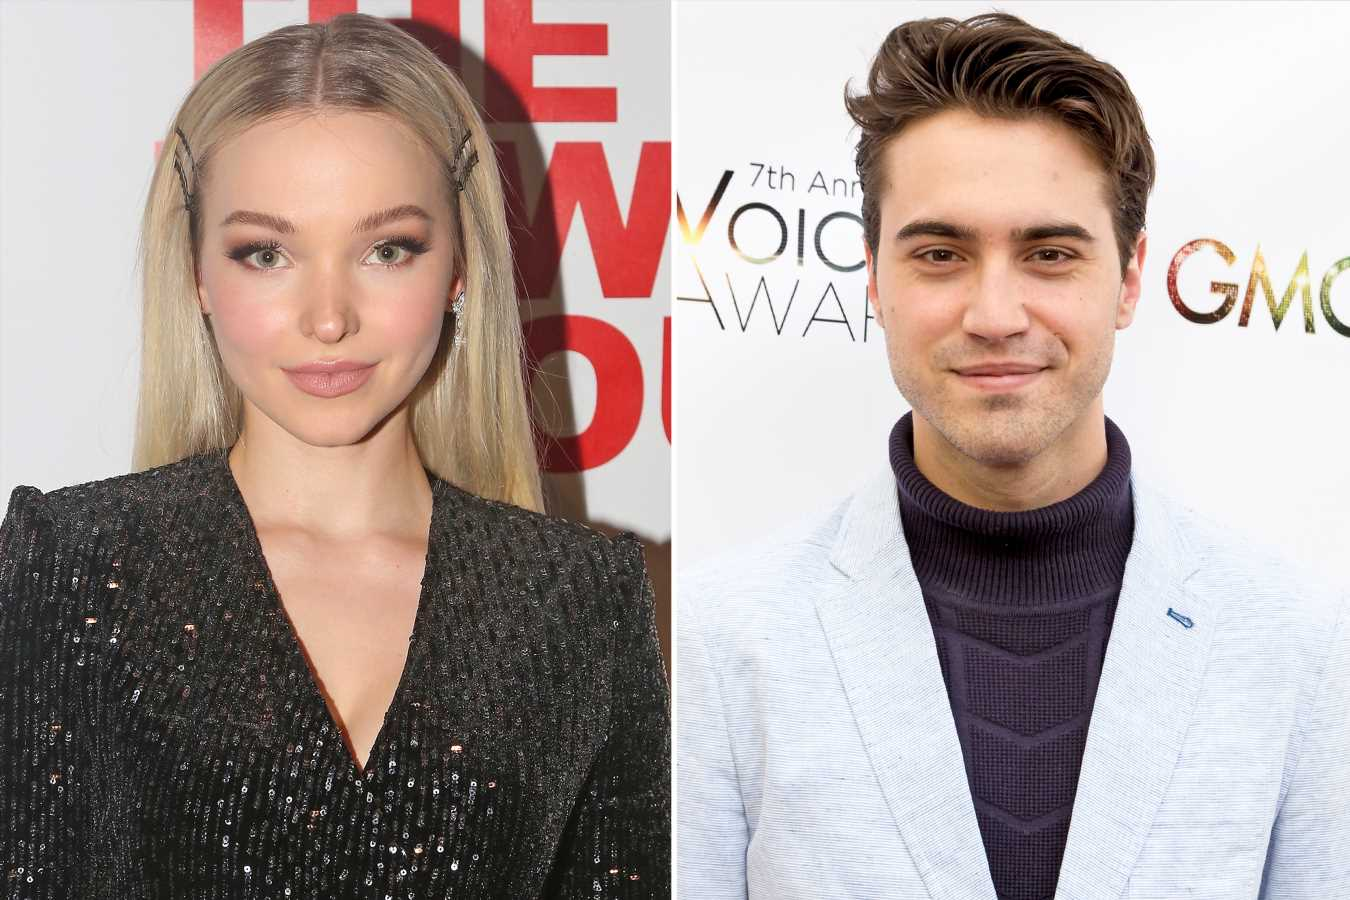 Dove Cameron on Split from Ex-Fiancé Ryan McCartan: 'The Very Low-Lows, I Did Not Make Public'